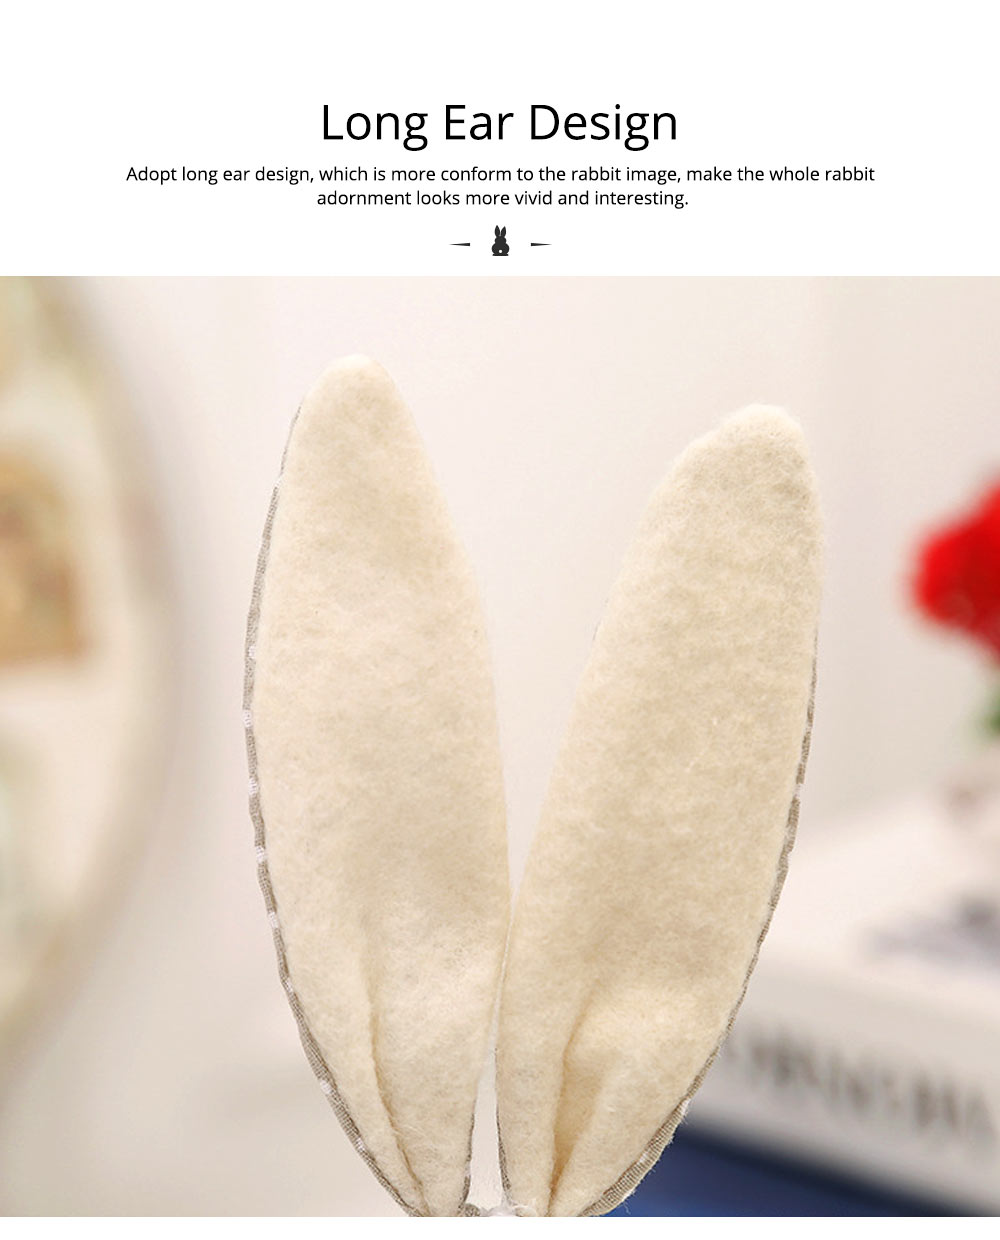 Resin Rabbit Doll Ornaments, Easter Bunny Ornaments Creative Gift for Birthday Wedding Household Decoration 16